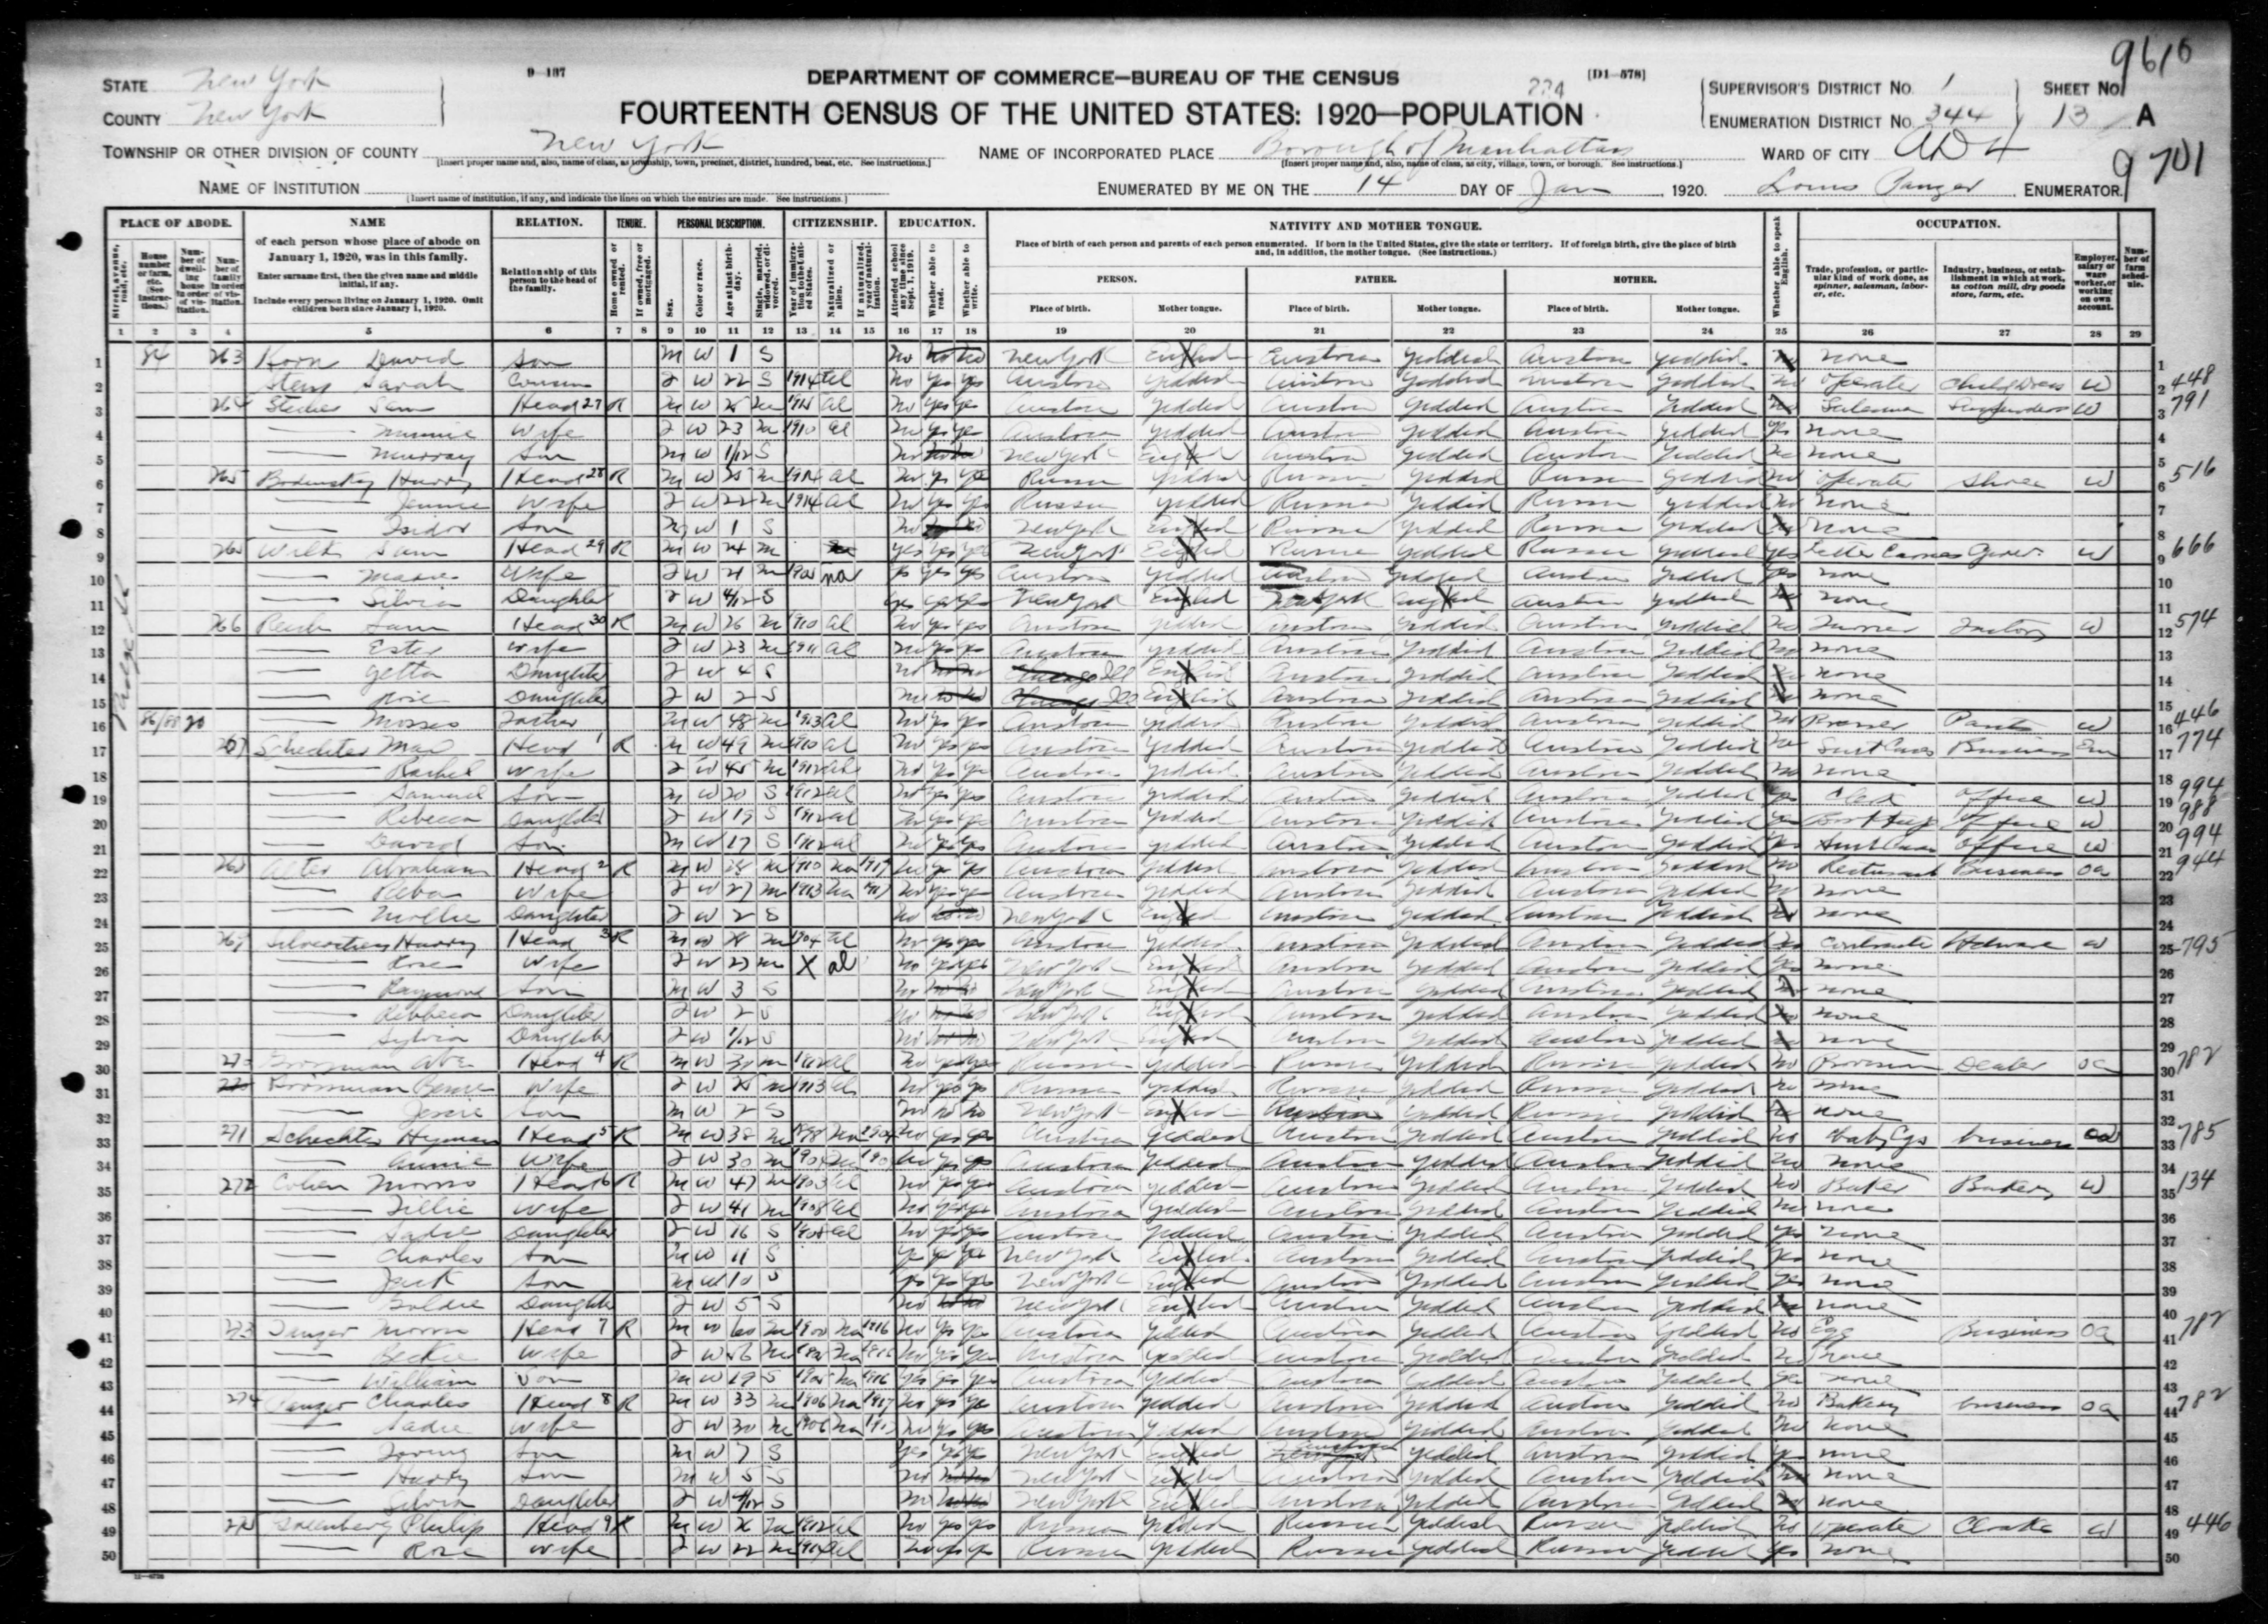 New York: NEW YORK County, Enumeration District 344, Sheet No. 13A